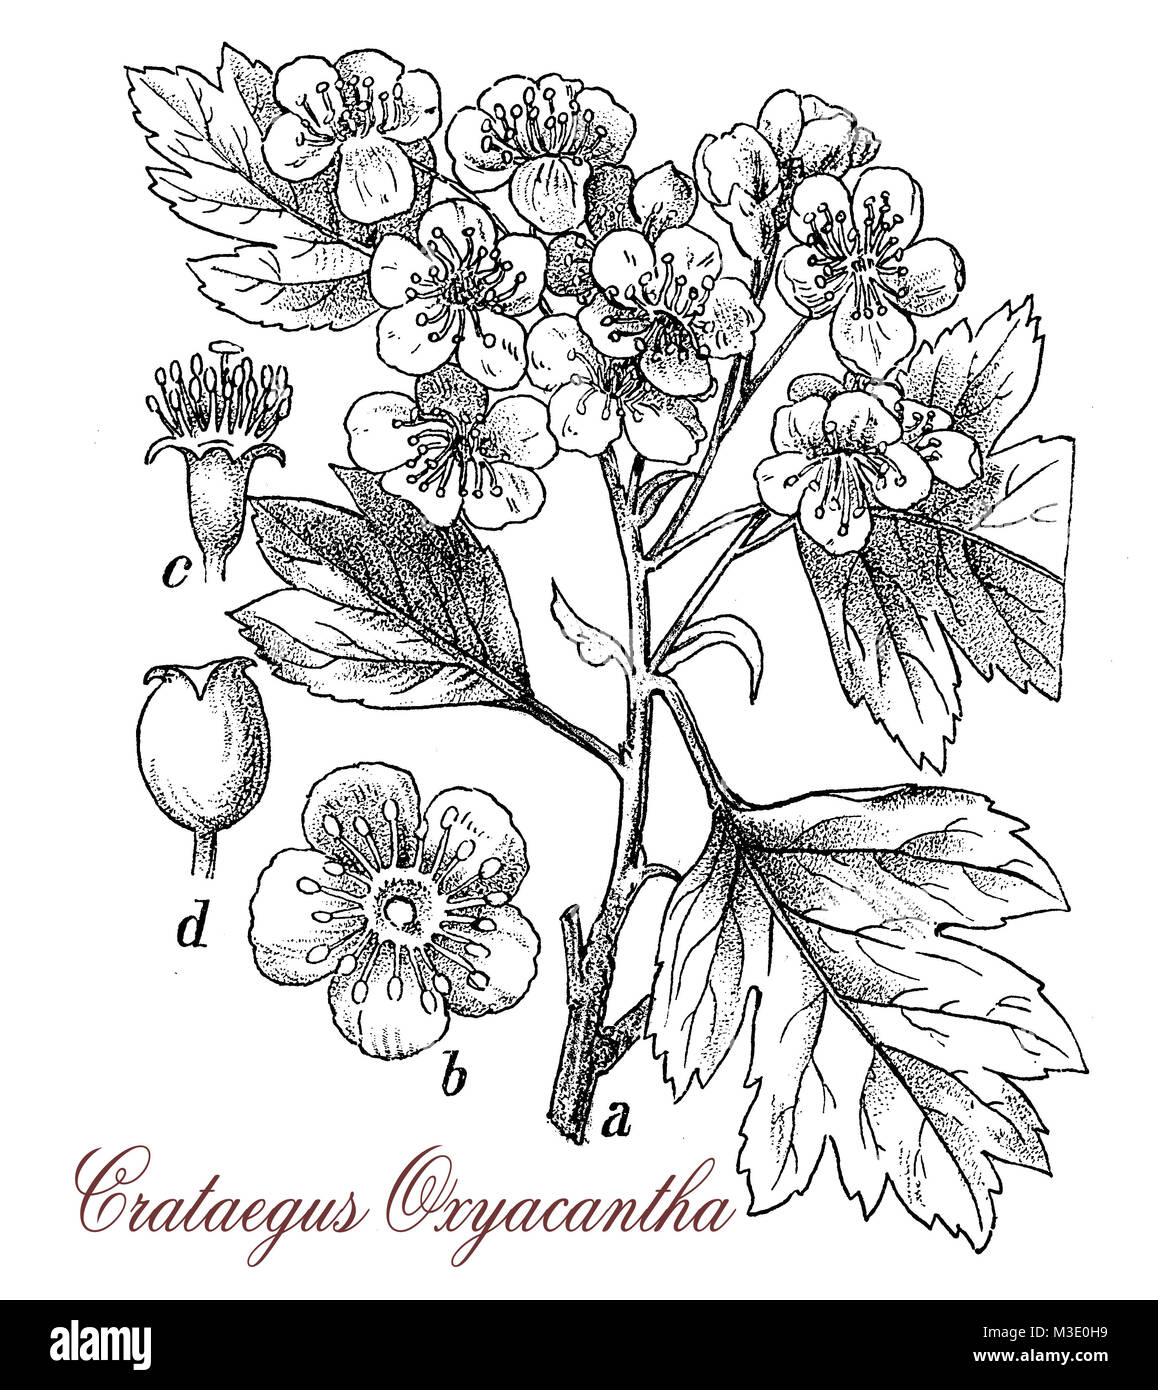 vintage engraving of crataegus oxyacantha, spiny shrup with red edible fruits, used as ornamental plant and  in - Stock Image